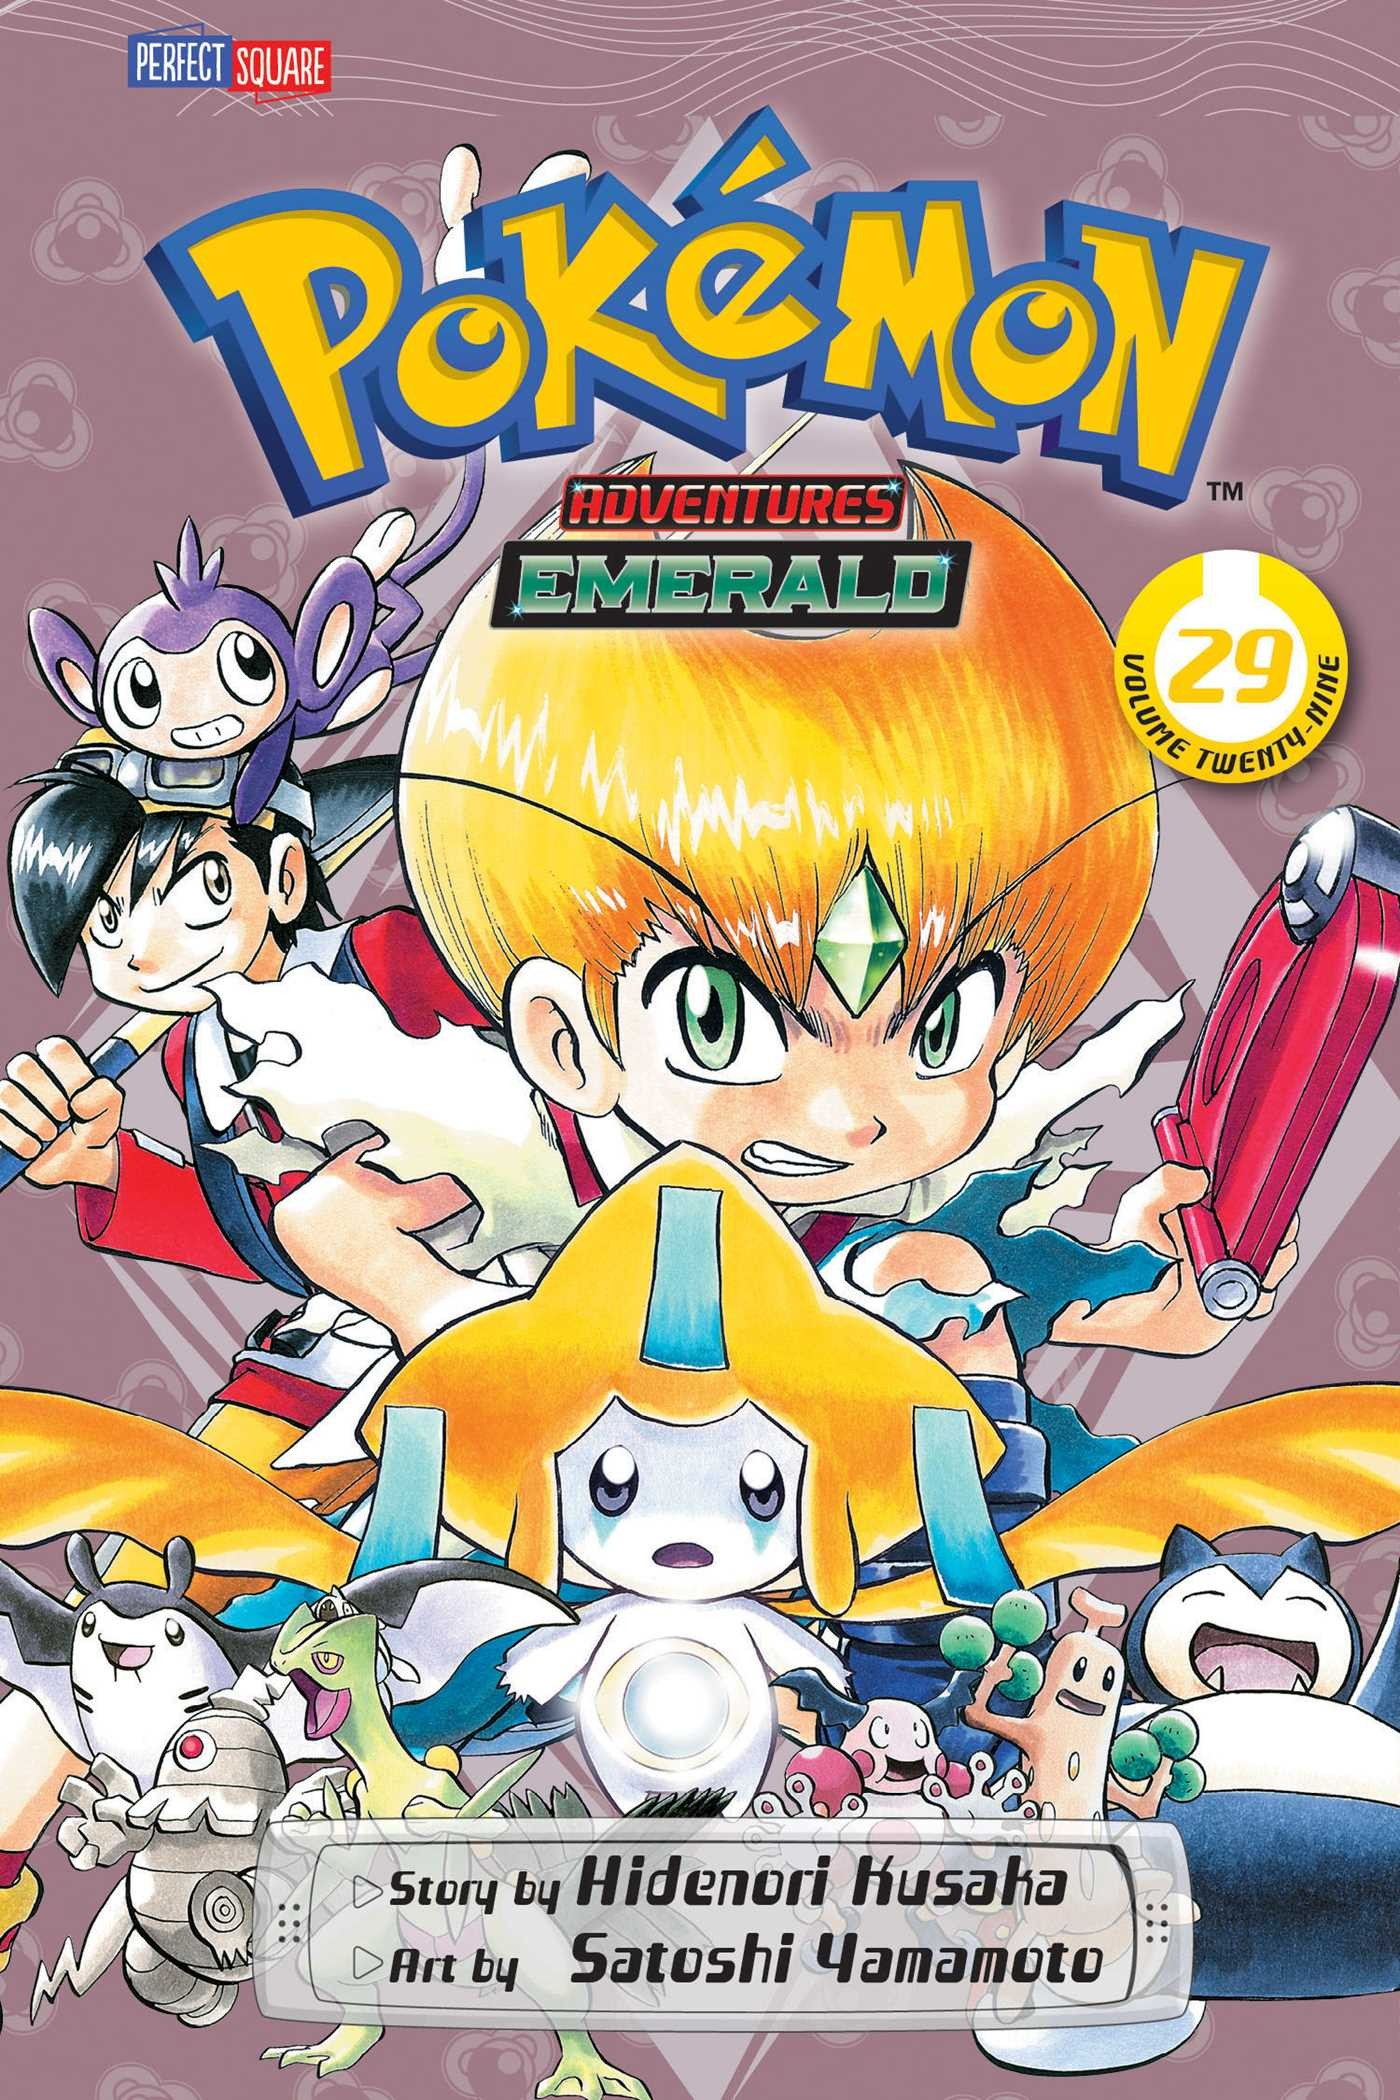 Pokémon Adventures, Vol. 29 by Hidenori Kusaka